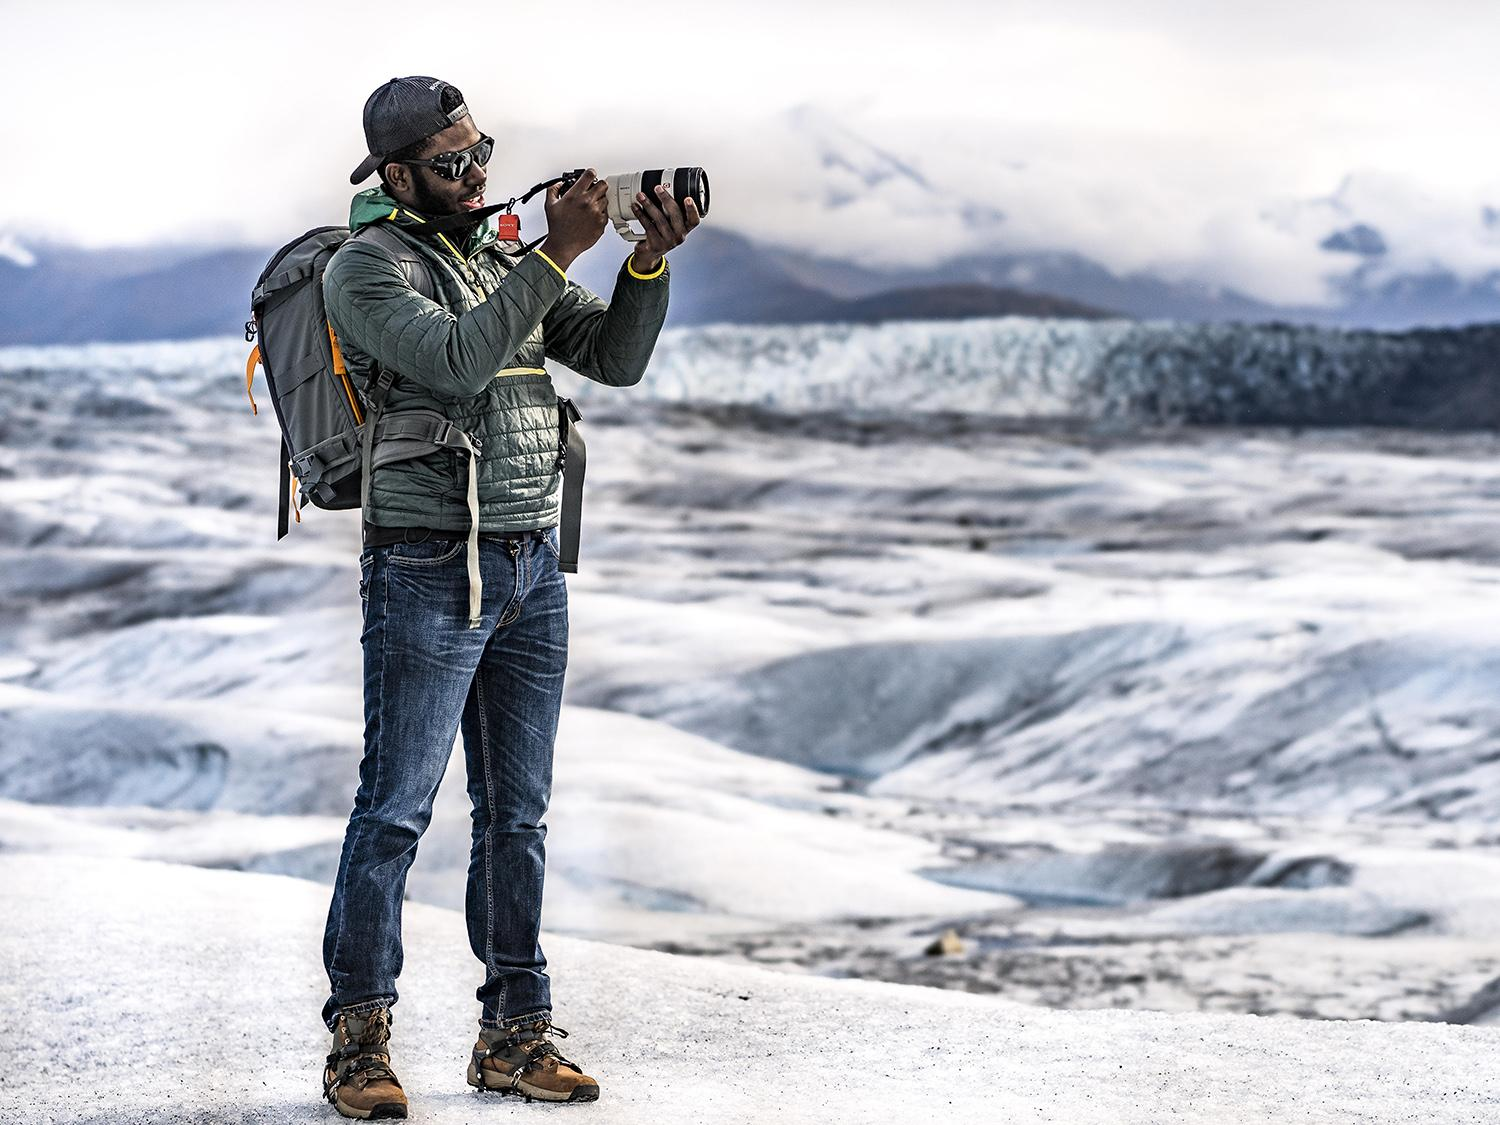 Mic-Anthony Hay looks through a camera with an arctic scene in background